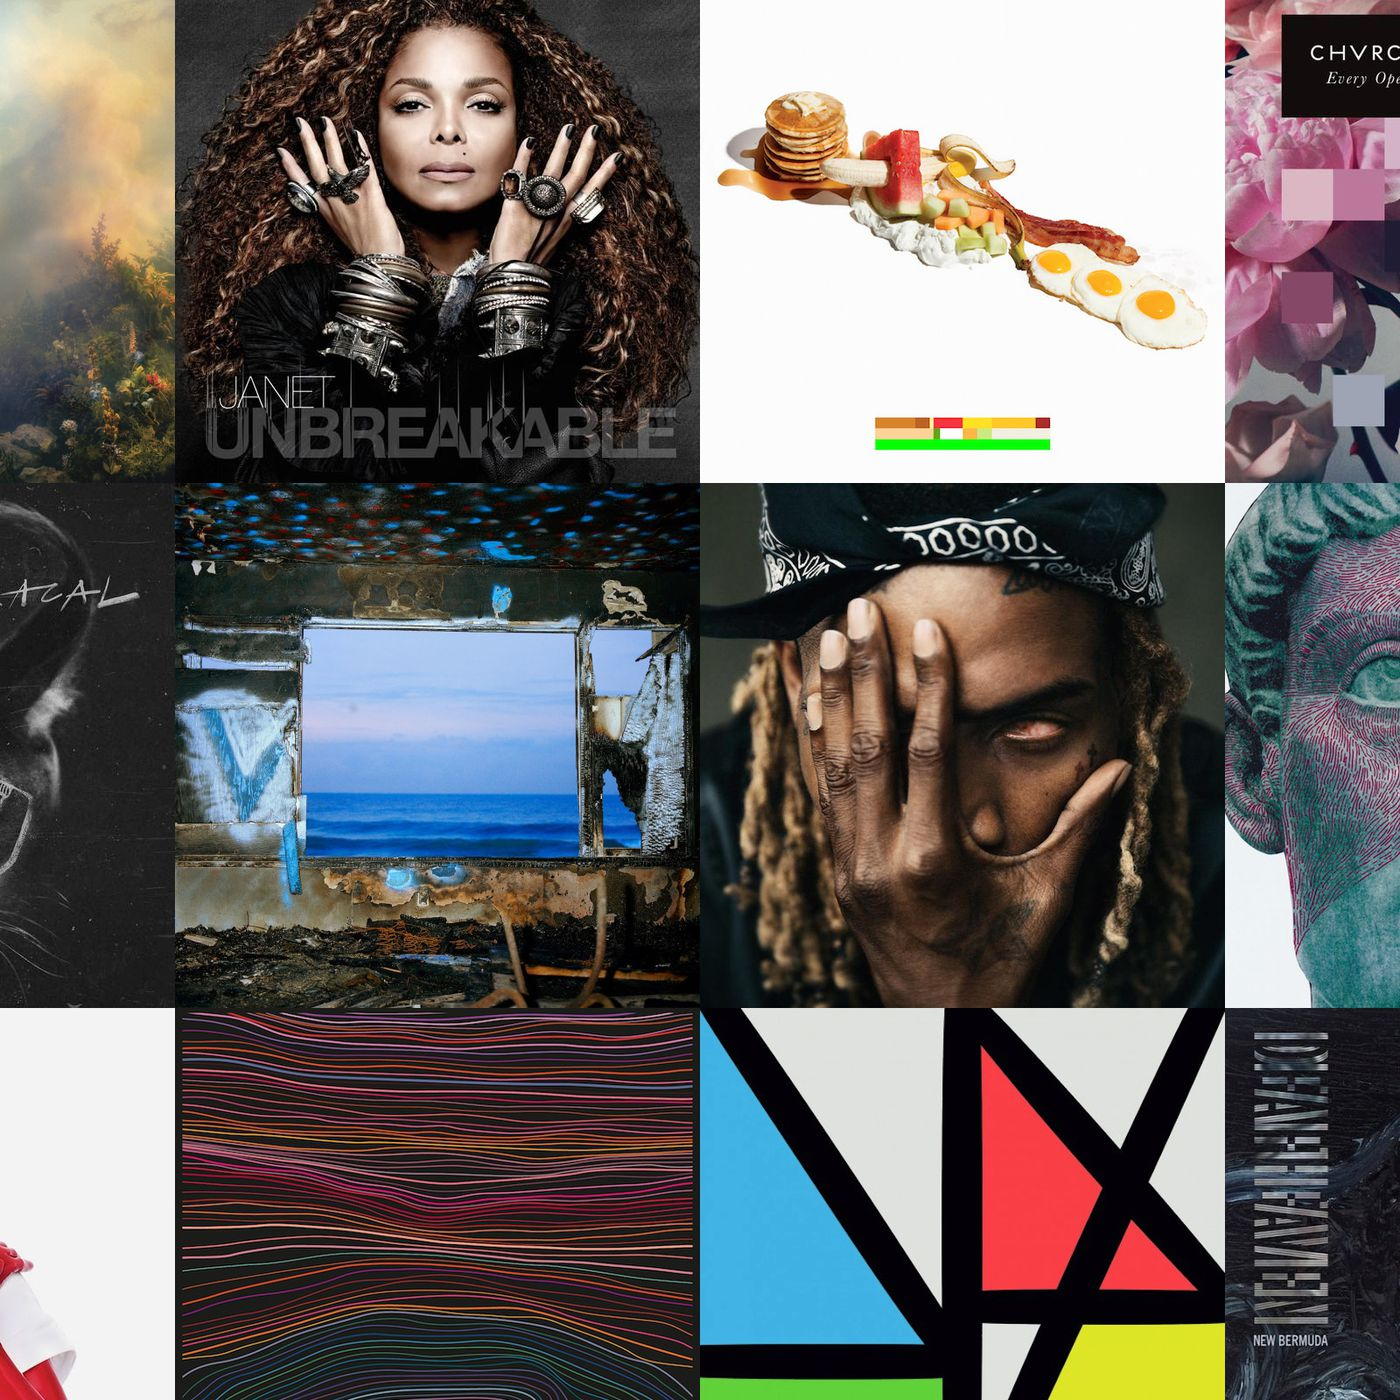 Fall 2015 music guide: the 48 albums we can't wait to hear | The Verge